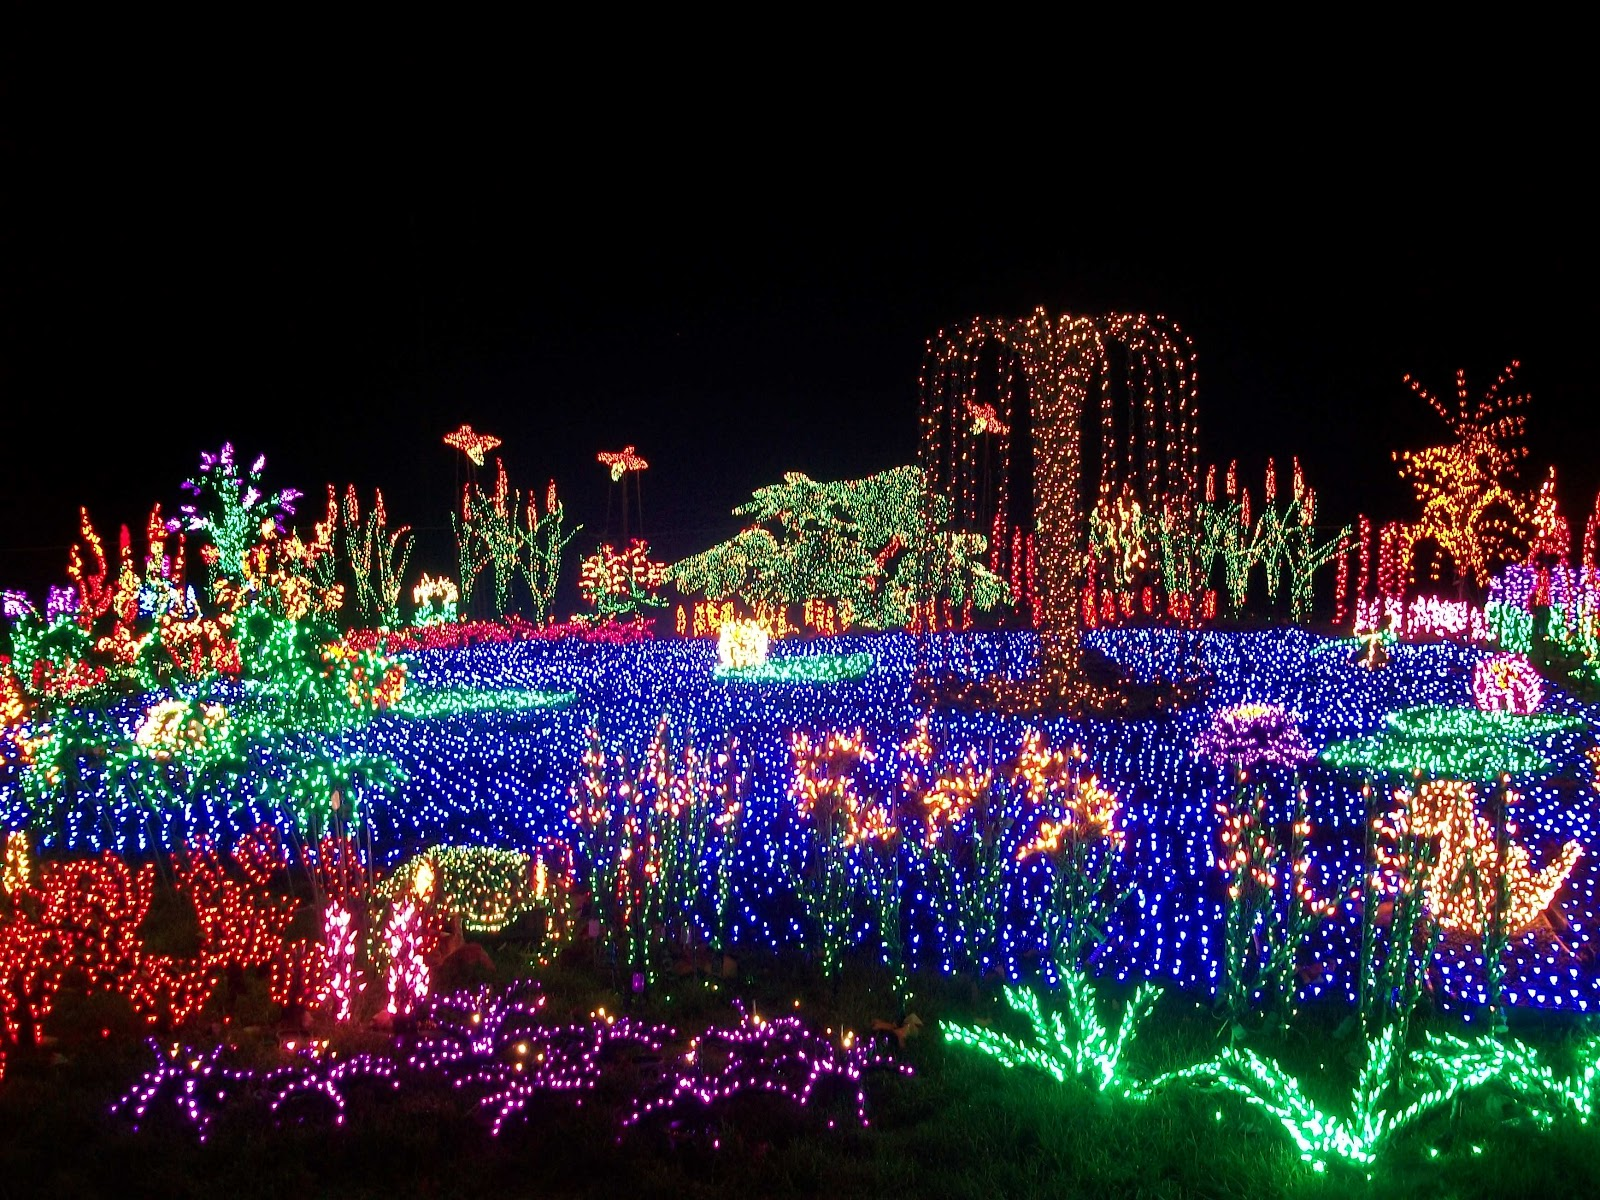 Indie grace wanderer bellevue botanical gardens holiday for Holiday lights botanical gardens